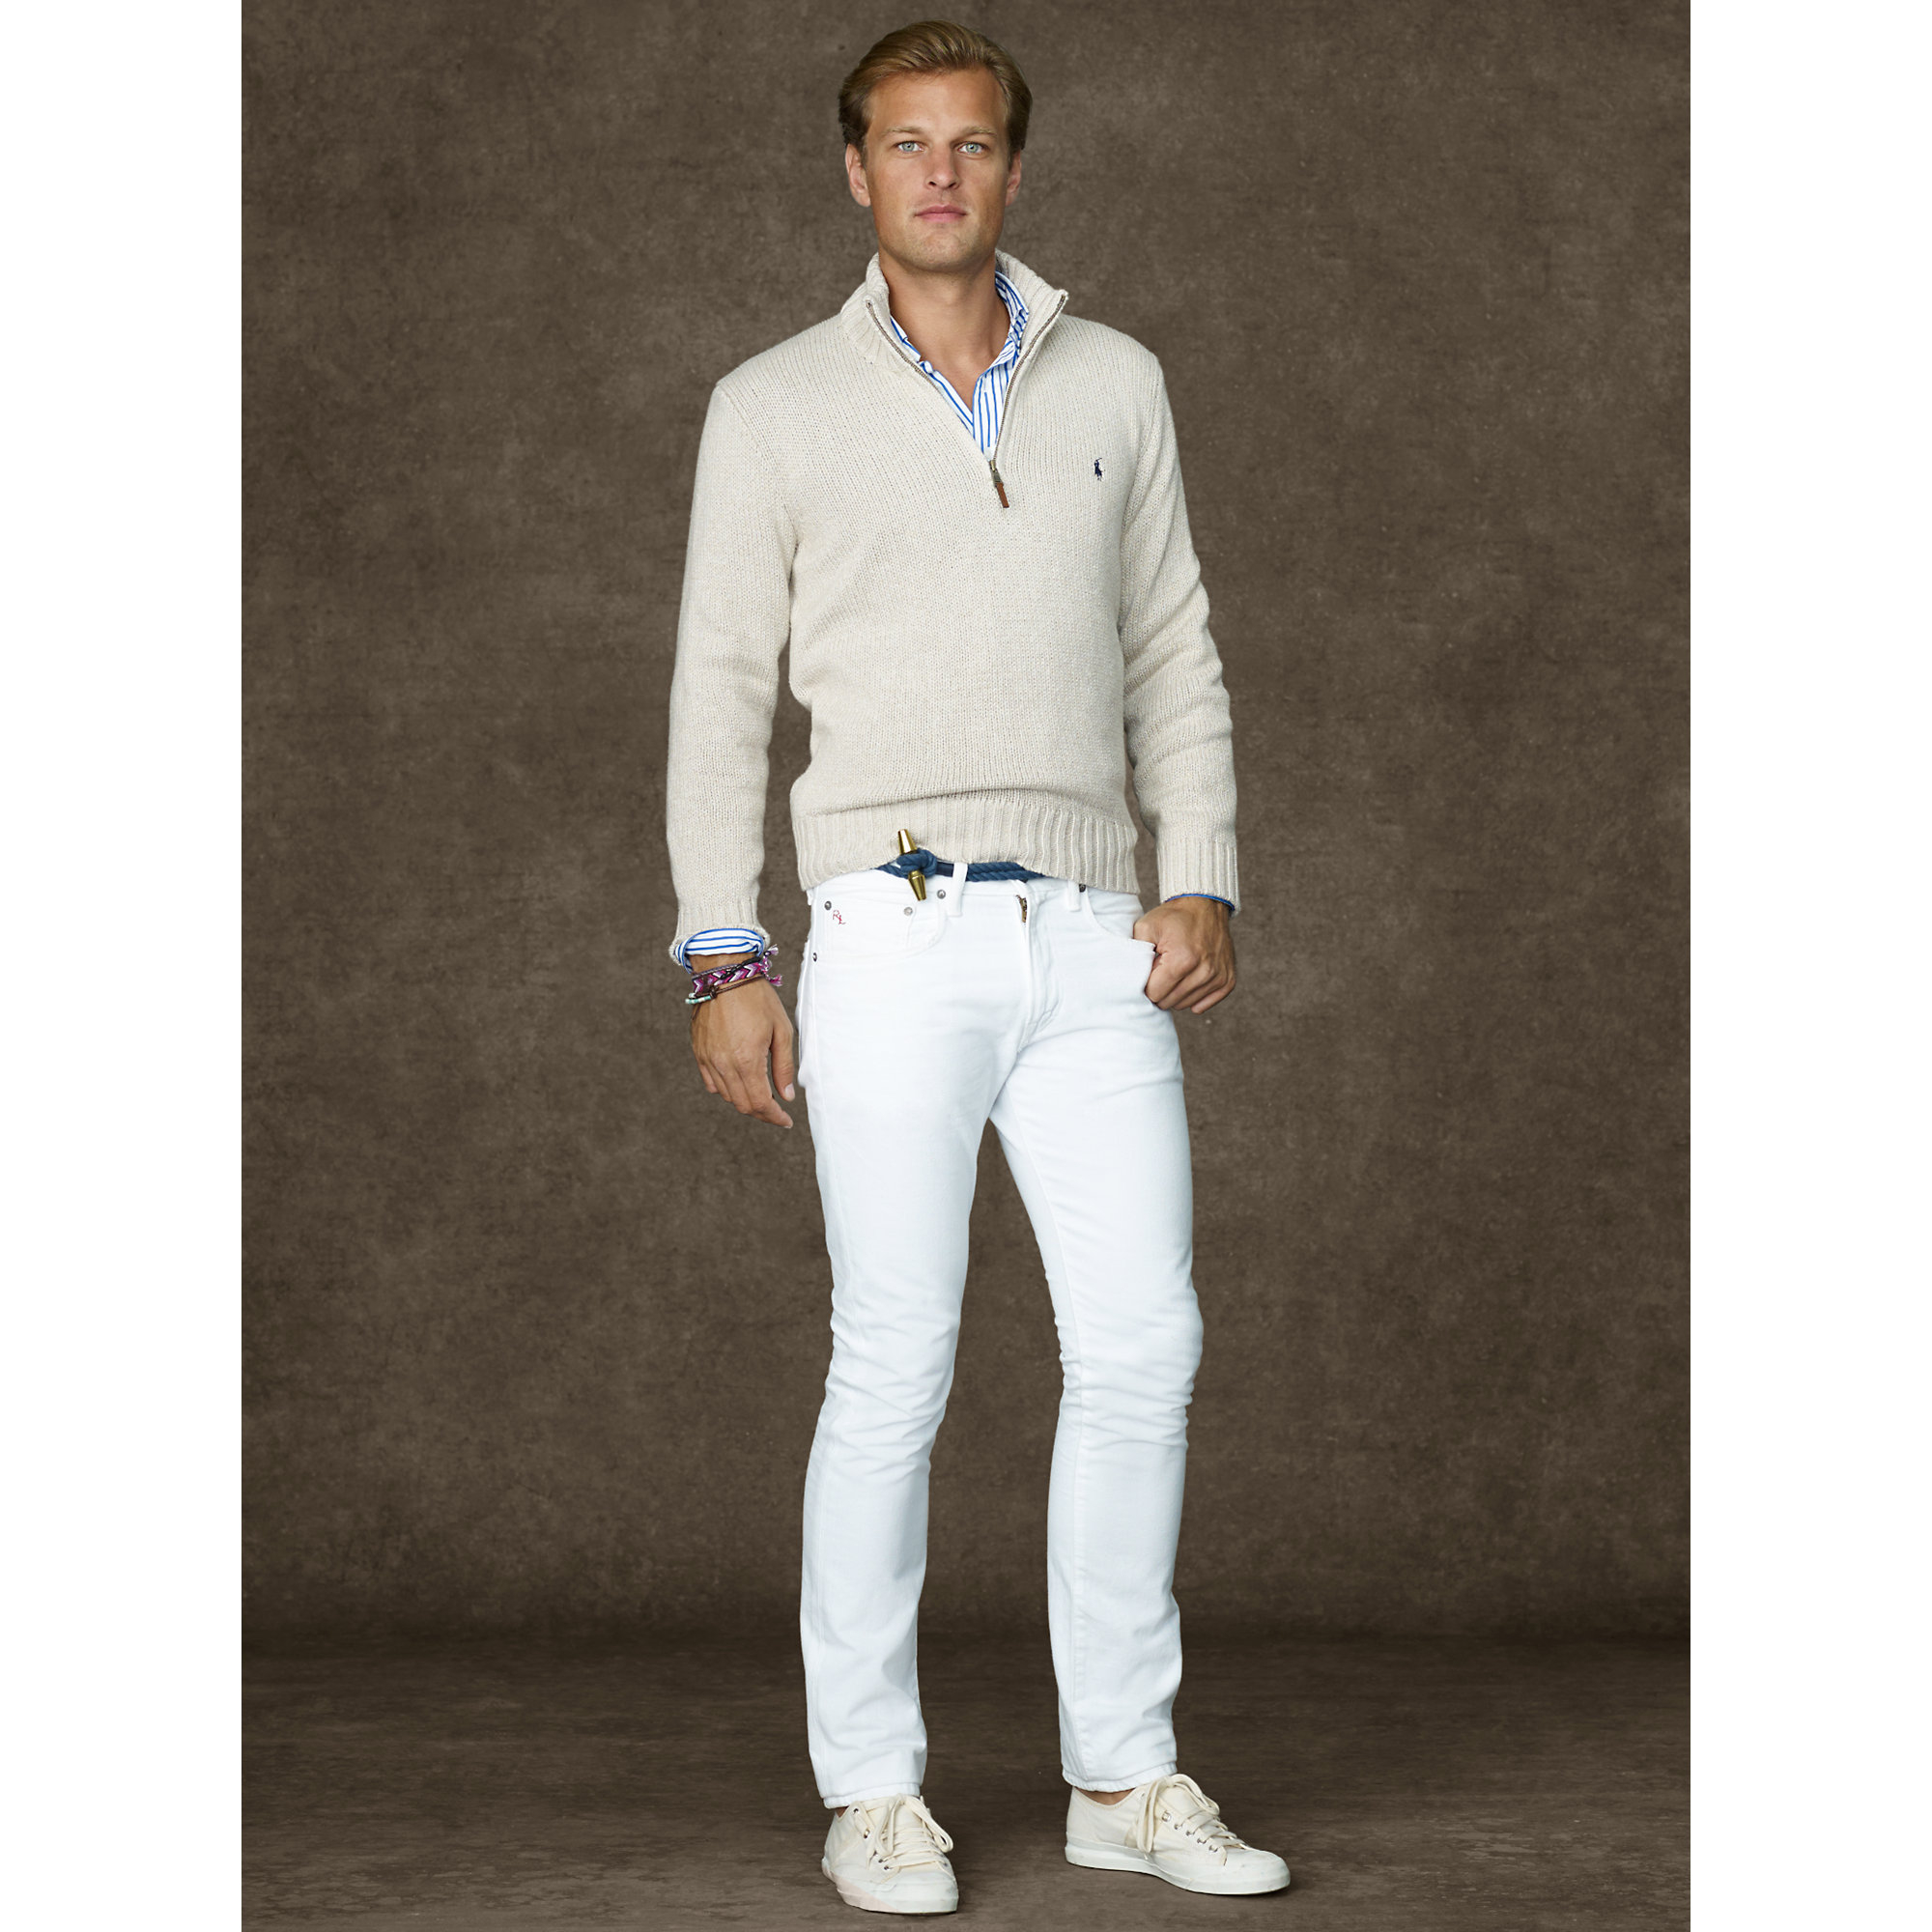 7d356a87 ... where to buy lyst polo ralph lauren cotton half zip sweater in natural  for men 2d7c1